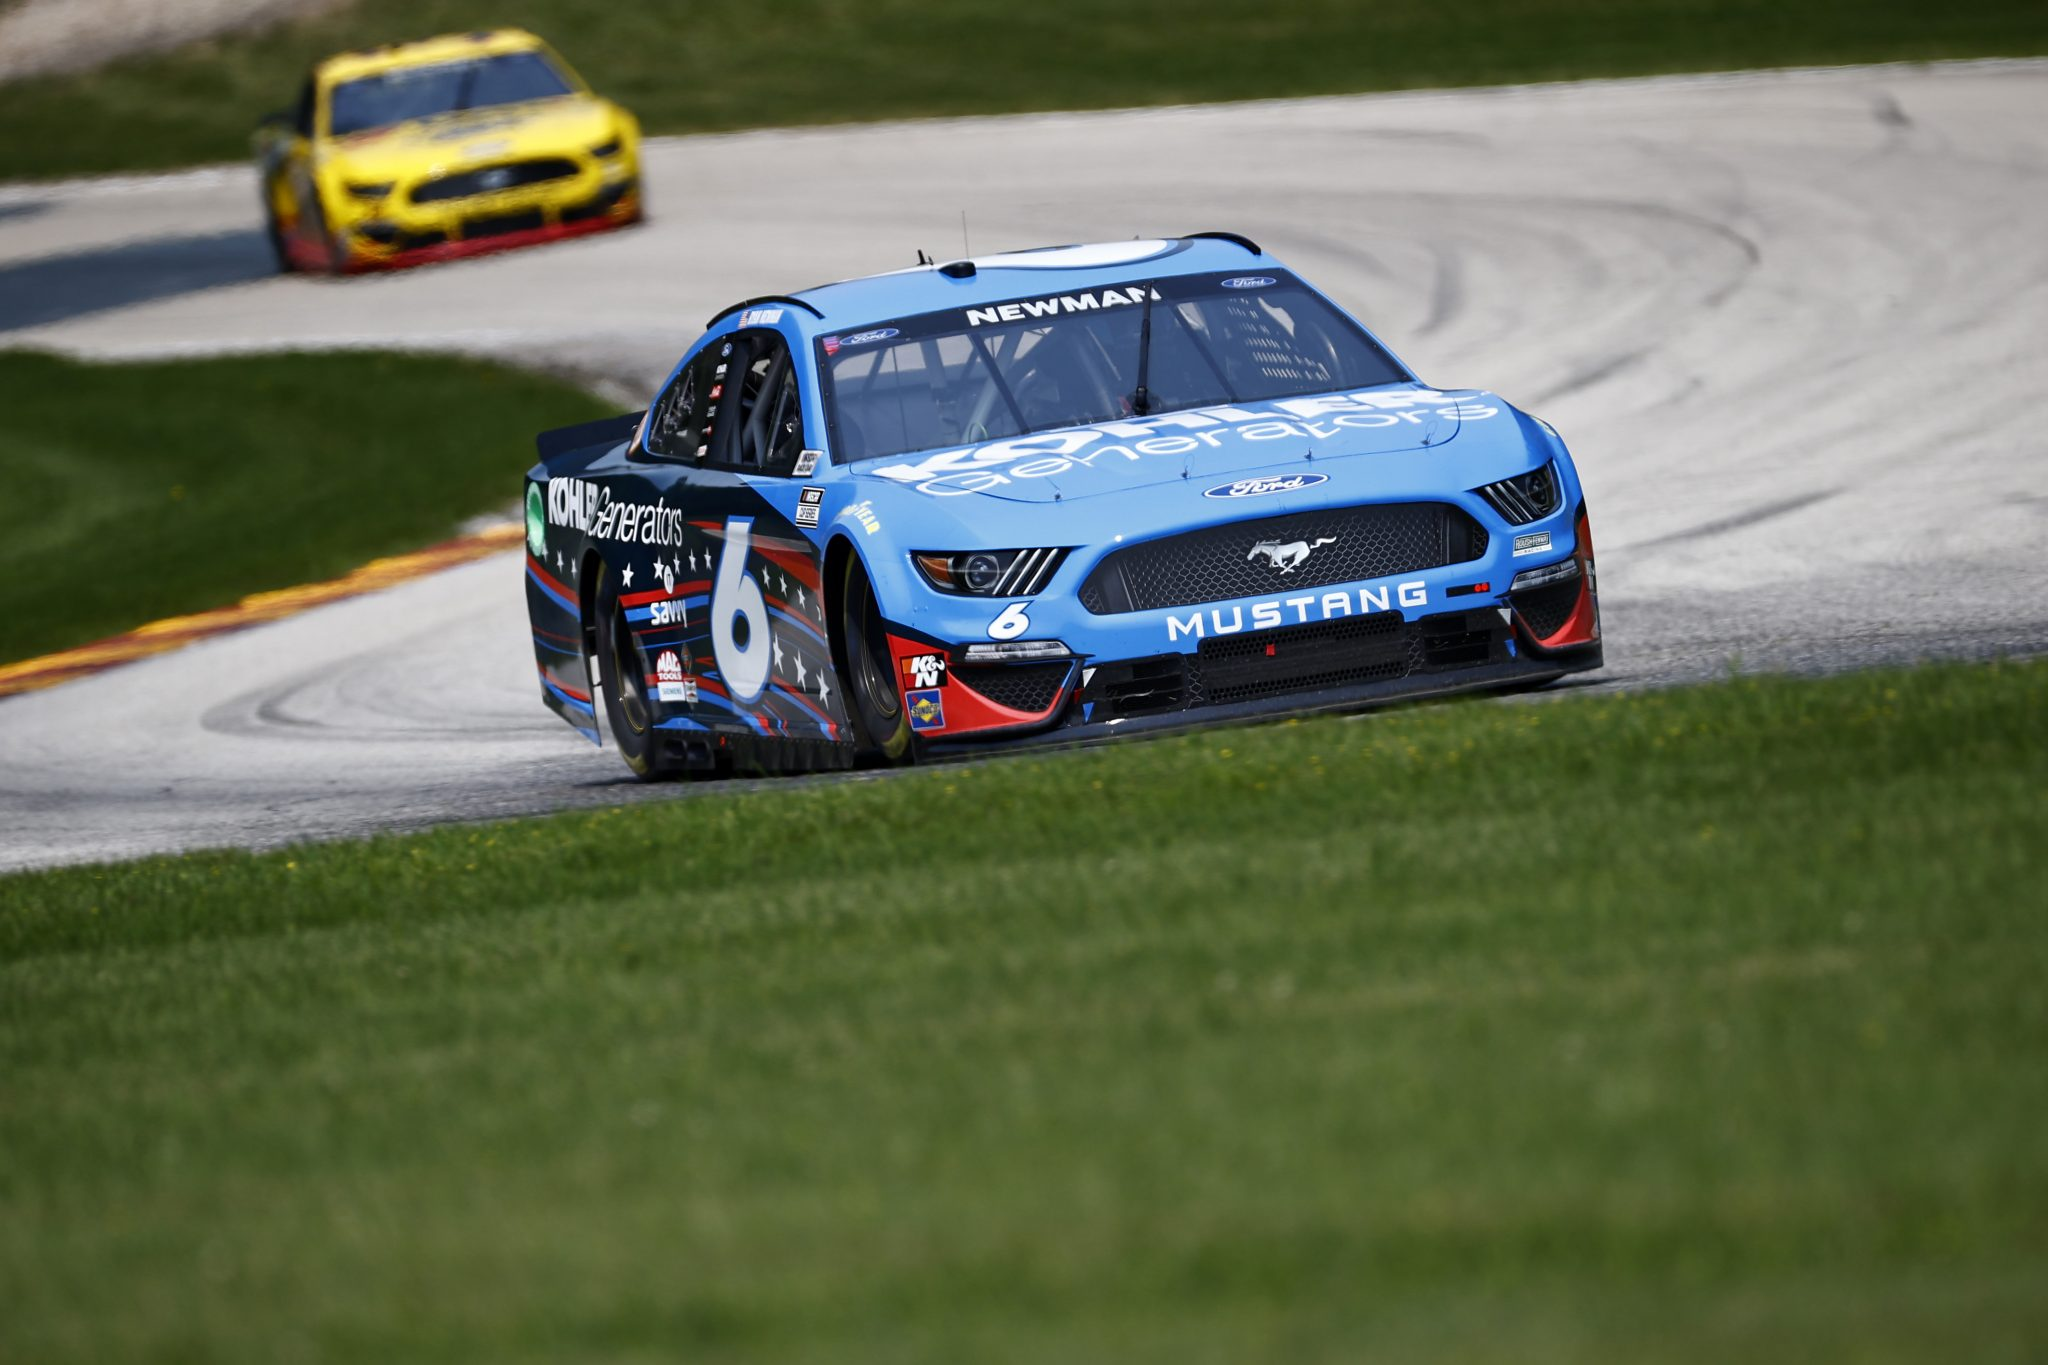 ELKHART LAKE, WISCONSIN - JULY 03: Ryan Newman, driver of the #6 Kohler Generators Ford, drives during practice for the NASCAR Cup Series Jockey Made in America 250 Presented by Kwik Trip at Road America on July 03, 2021 in Elkhart Lake, Wisconsin. (Photo by Jared C. Tilton/Getty Images) | Getty Images